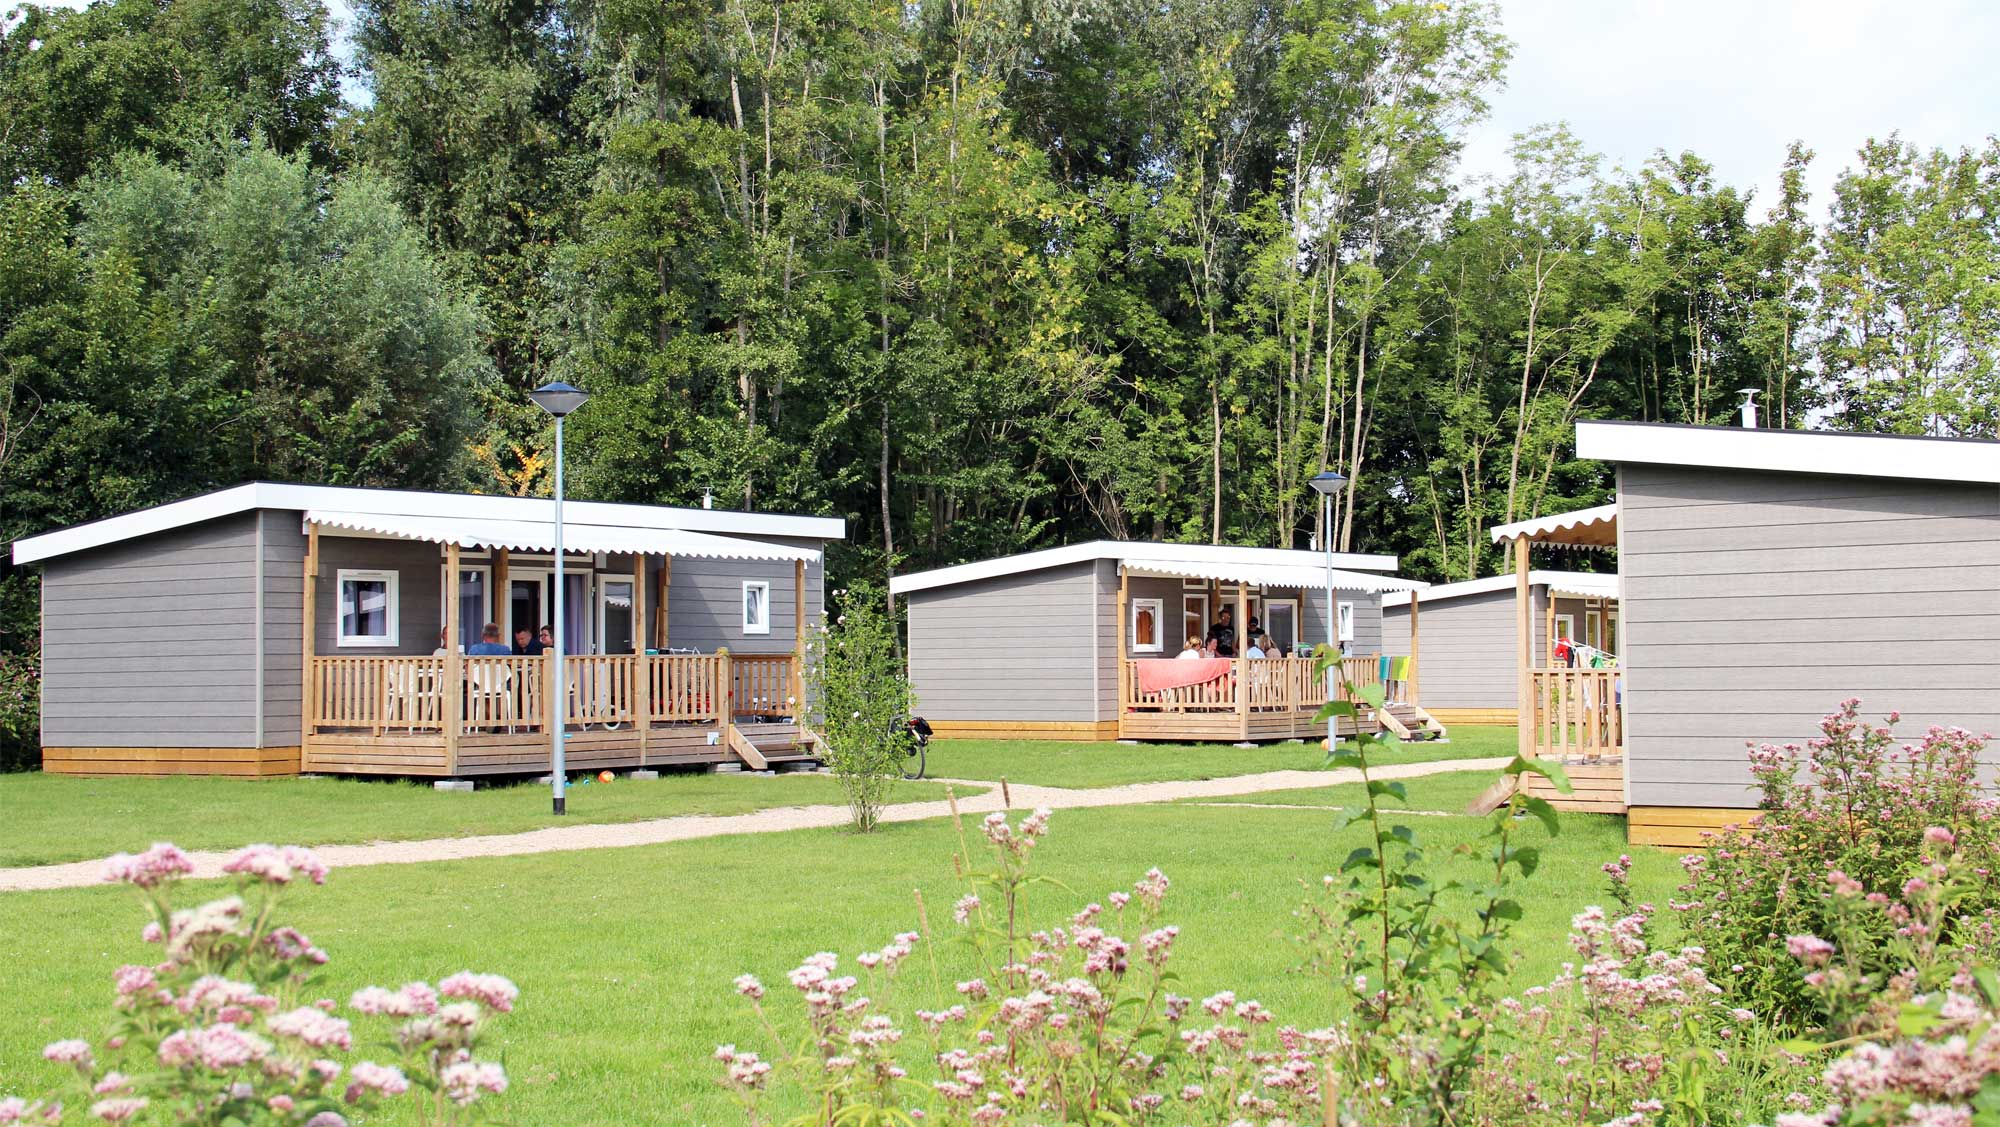 6pers chalet Pimpernel Molecaten Park Rondeweibos 01